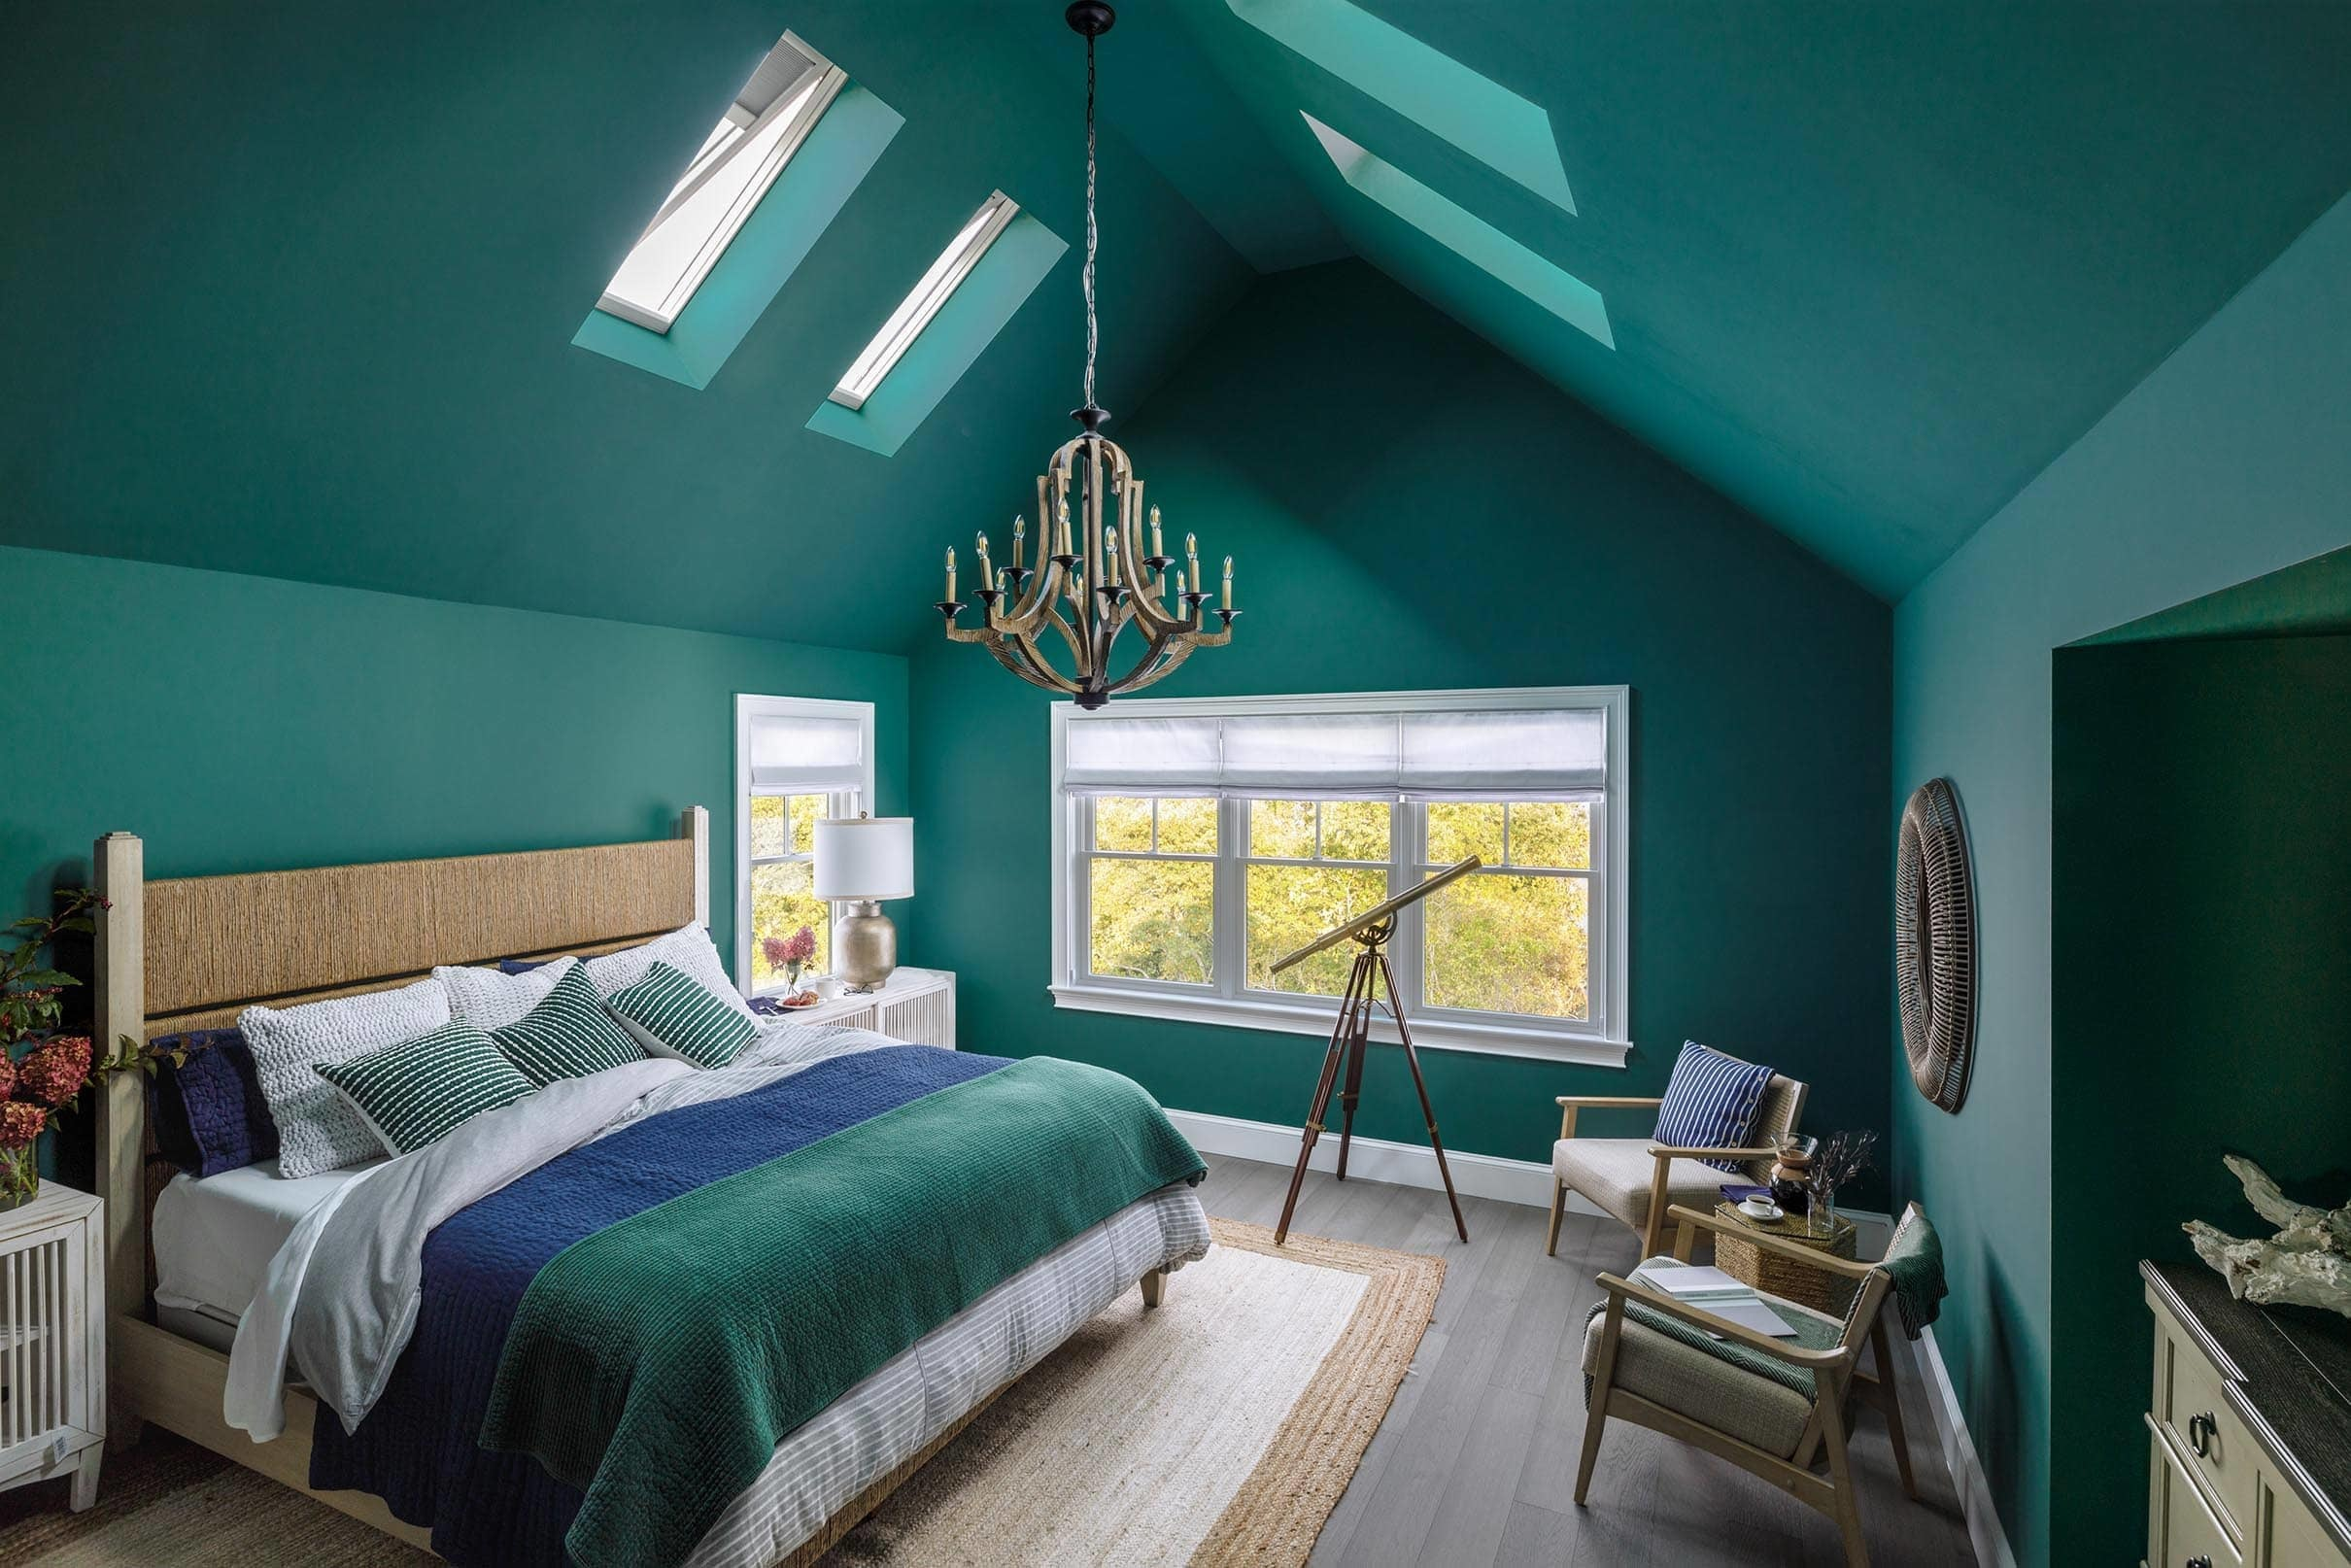 Bedroom green walls open skylights small